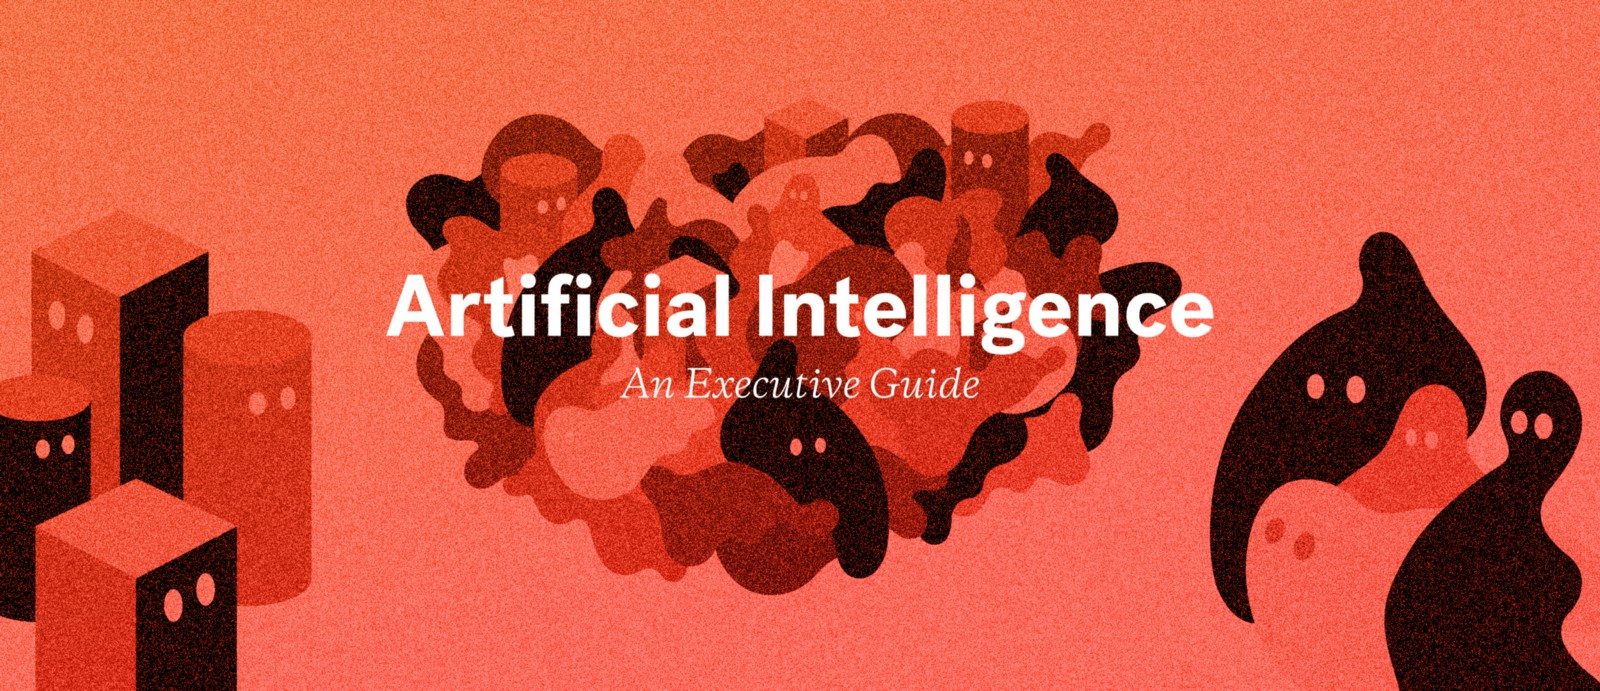 An Executive Guide to Artificial Intelligence